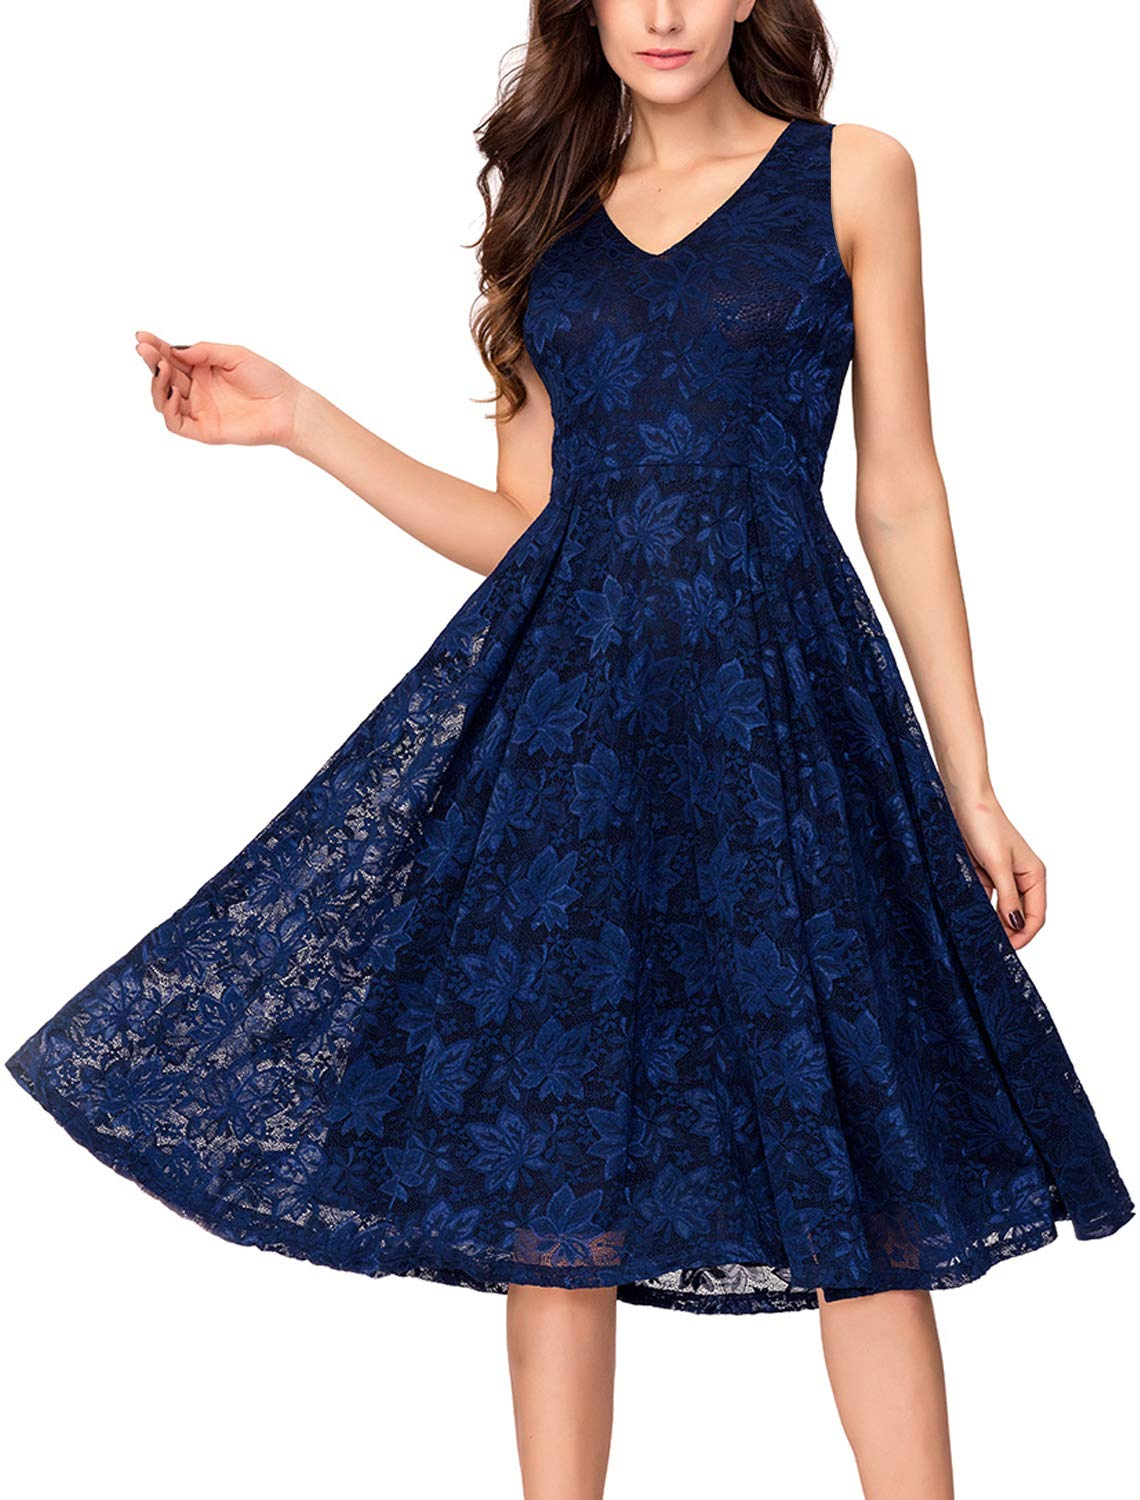 Wedding Guest Dresses - Women's Retro Lace Floral Sleeveless High Neck Mermaid Cocktail Evening Party Dress